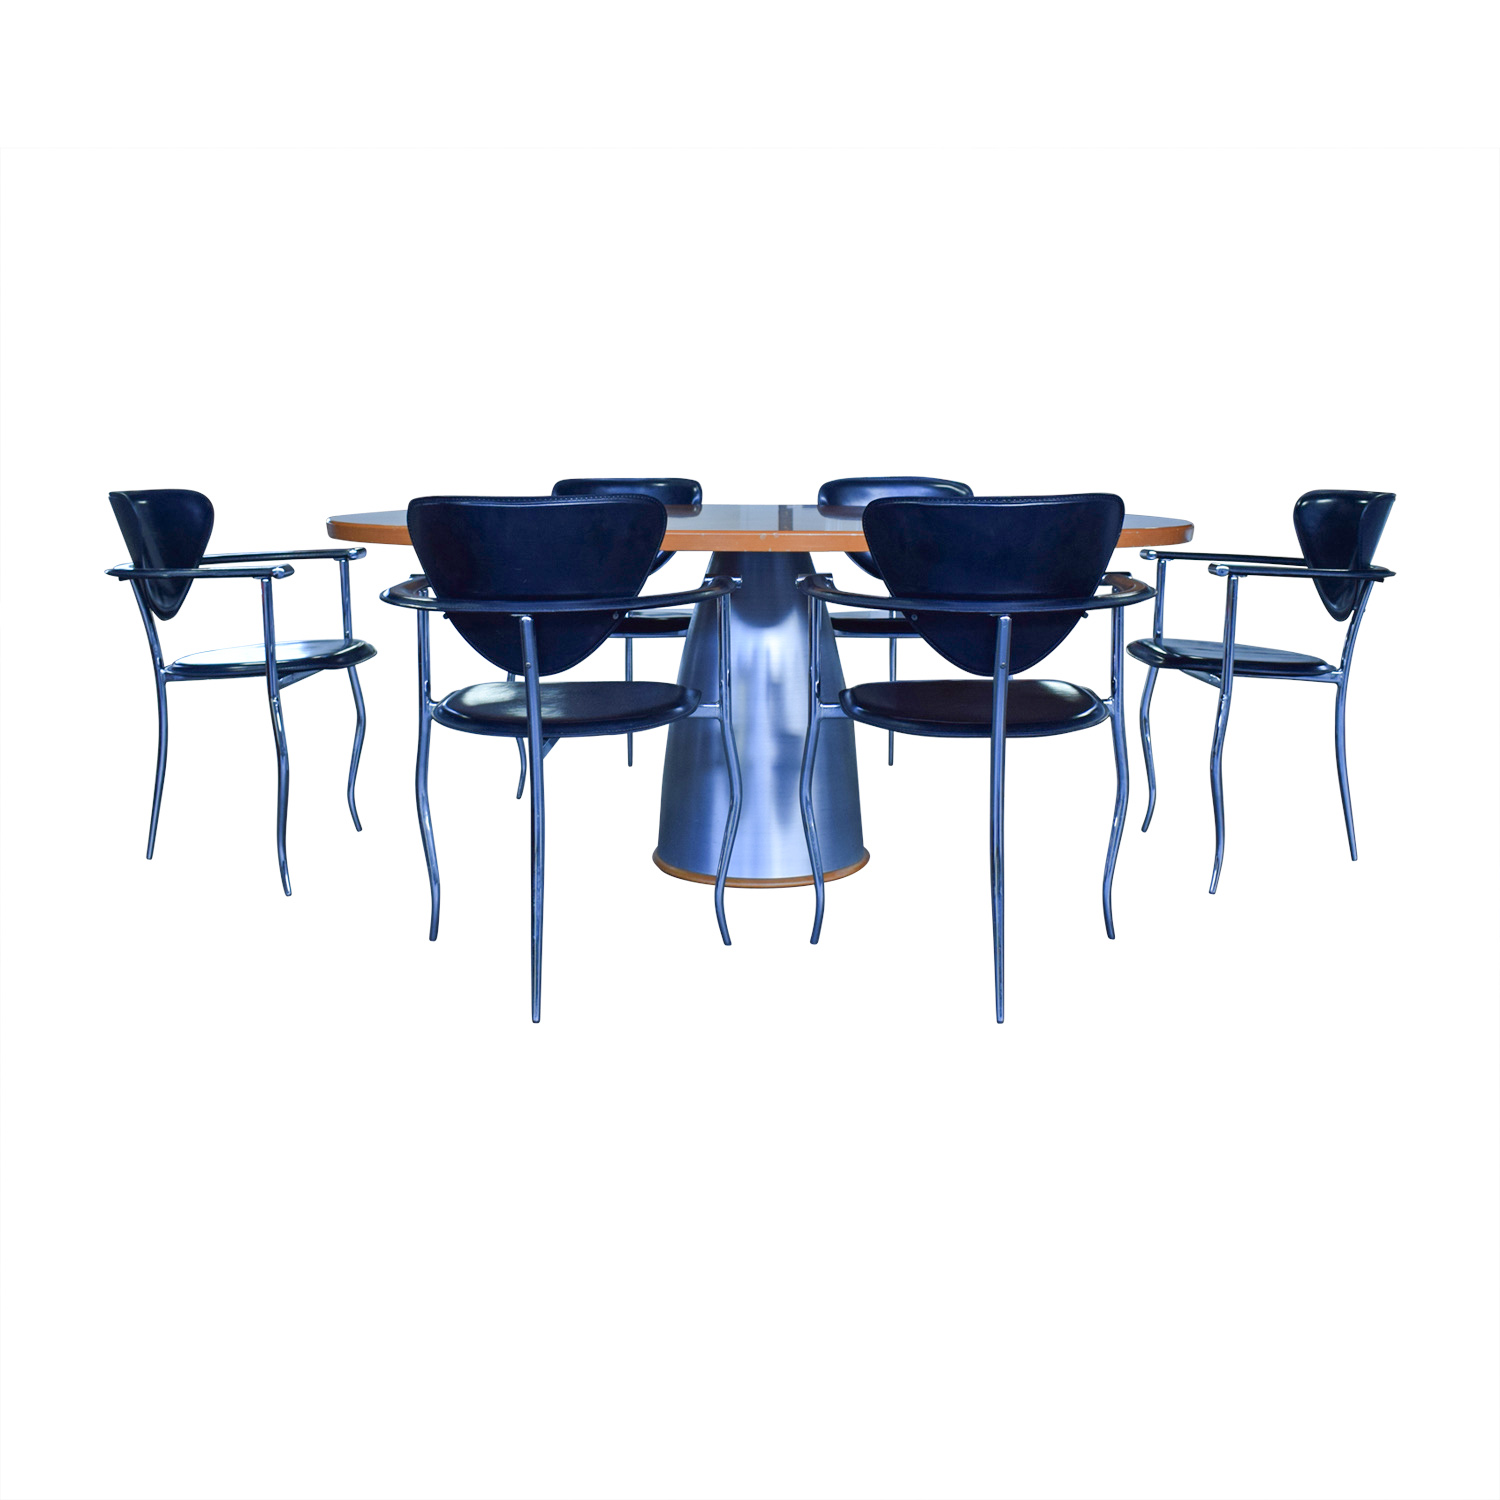 shop Cattelan Cattelan Wood and Steel Table with Black Chairs Dining Set online